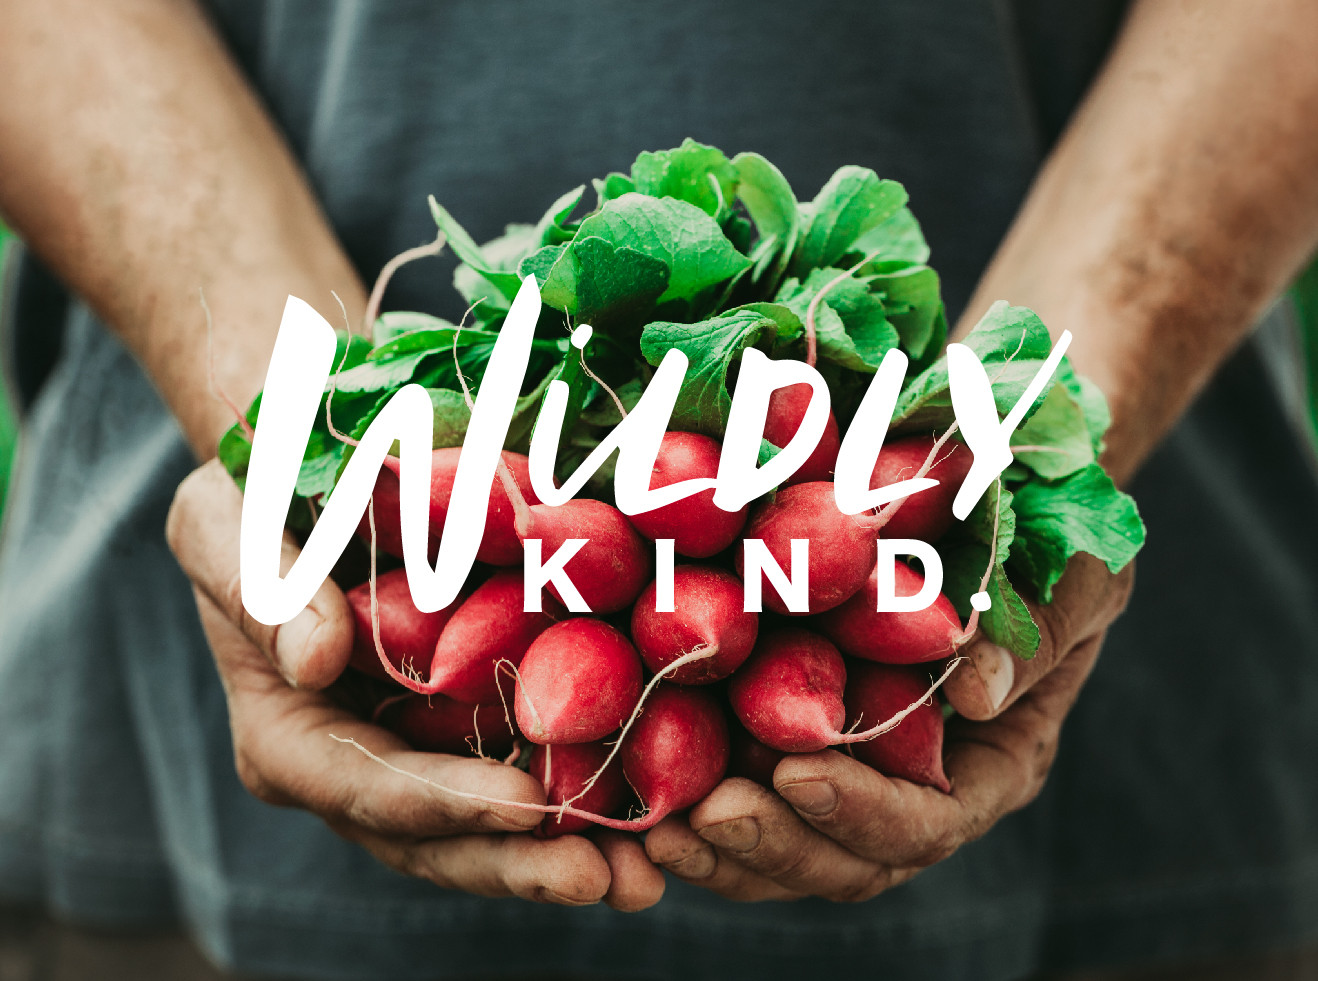 Wildly Kind